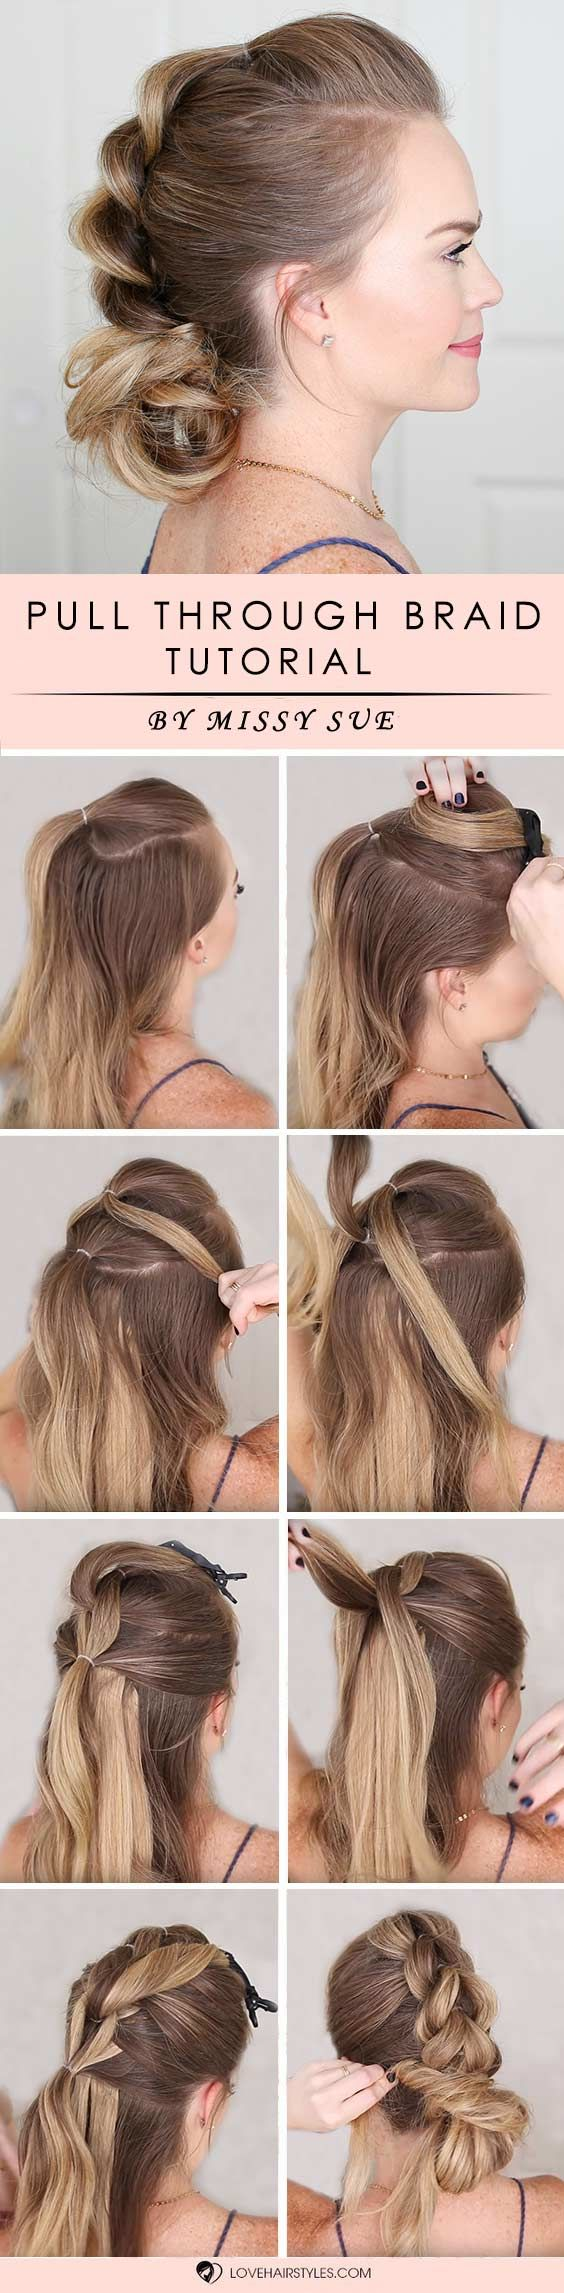 Pull Through Braid Low Bun #braids #hairtutorials